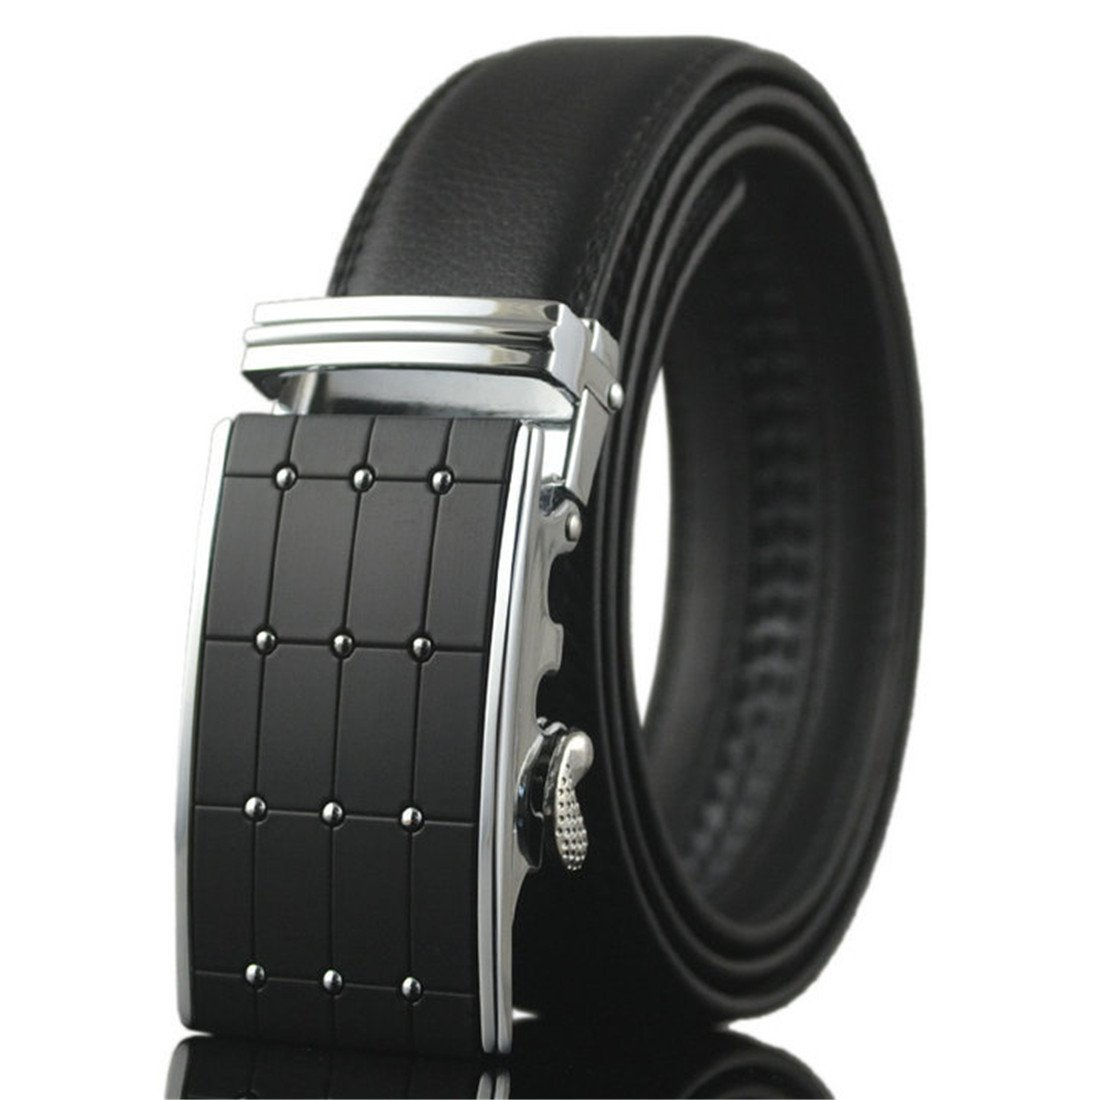 KHC Men's Belt 100% High Quality Leather Automatic Adjustable Buckle Black apparel-belts